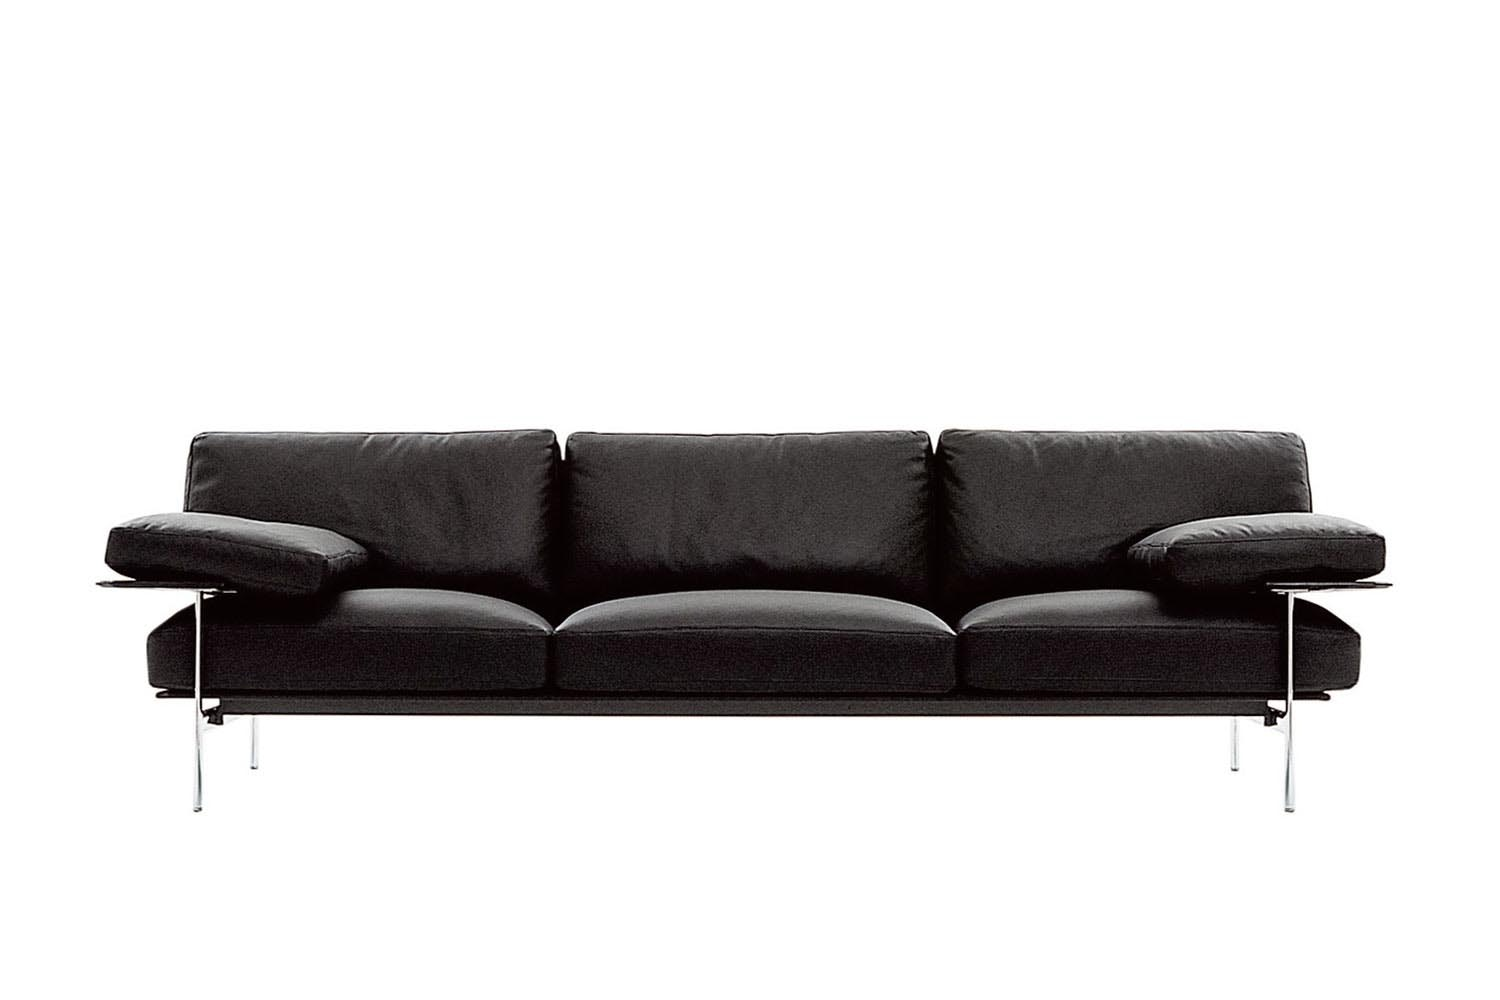 Diesis Sofa by Antonio Citterio and Paolo Nava for B&B Italia